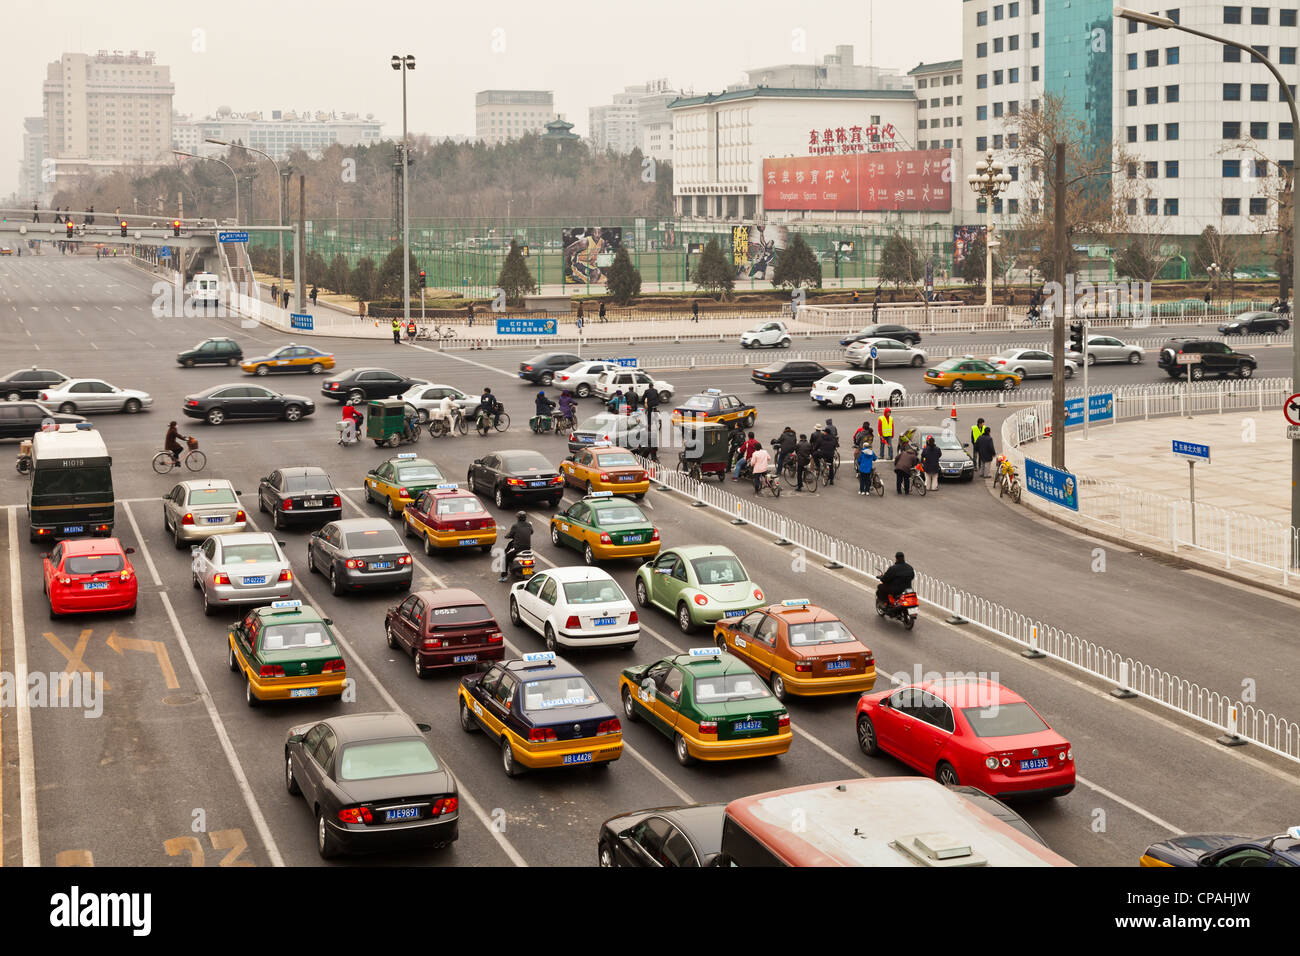 Morning rush hour in Beijing, China, with cars, bikes and the pollution for which the city is infamous - Stock Image